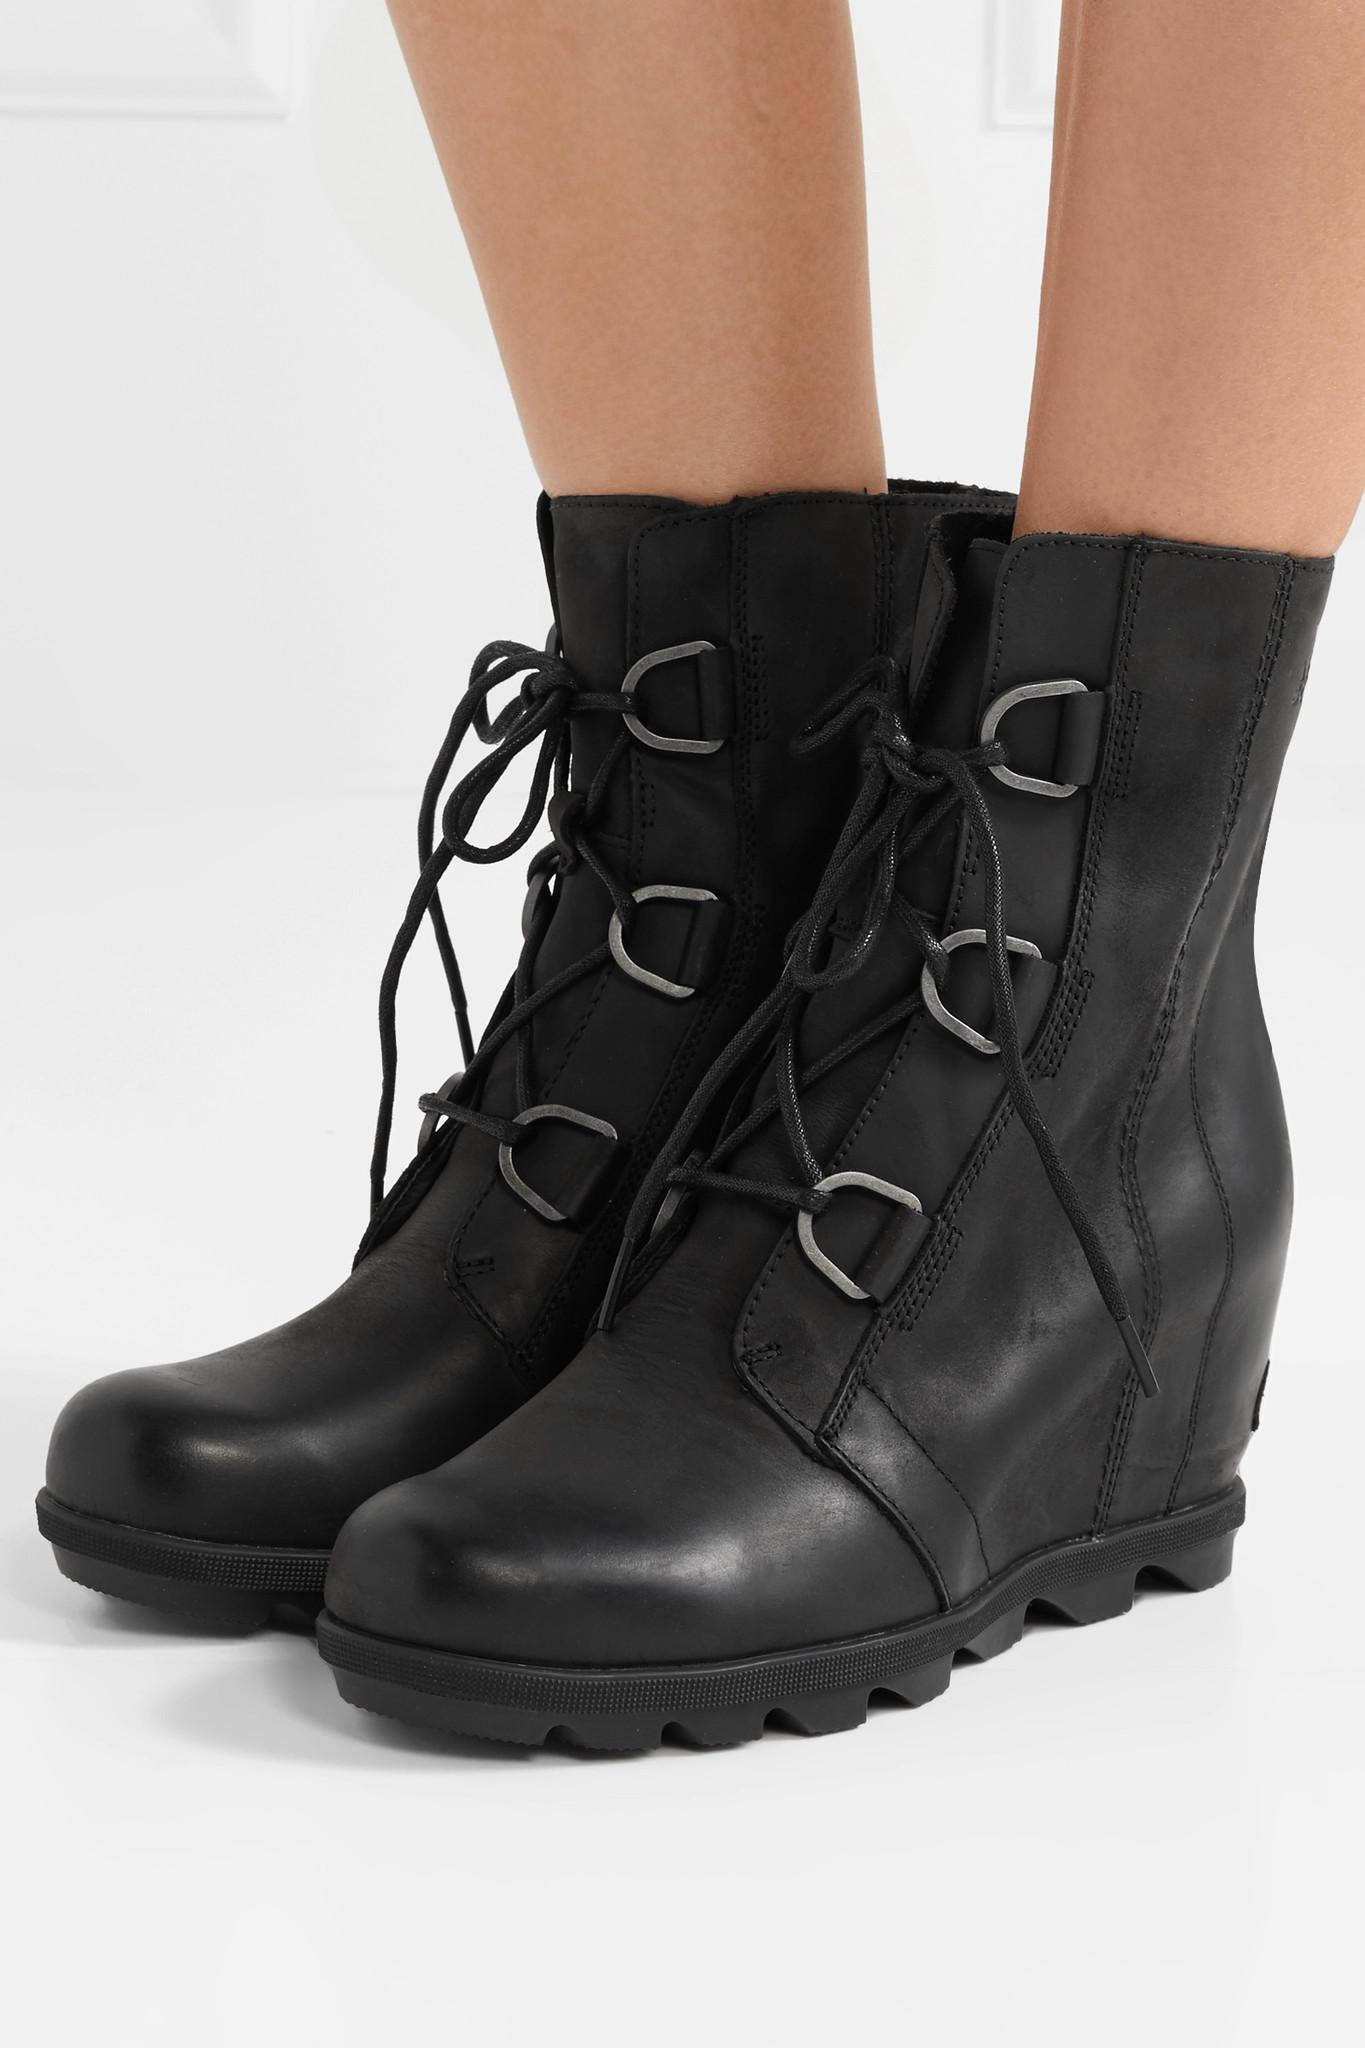 7a0c5c68cc5 Sorel - Black Joan Of Arctic Wedge Ii Waterproof Leather And Rubber Ankle  Boots - Lyst. View fullscreen